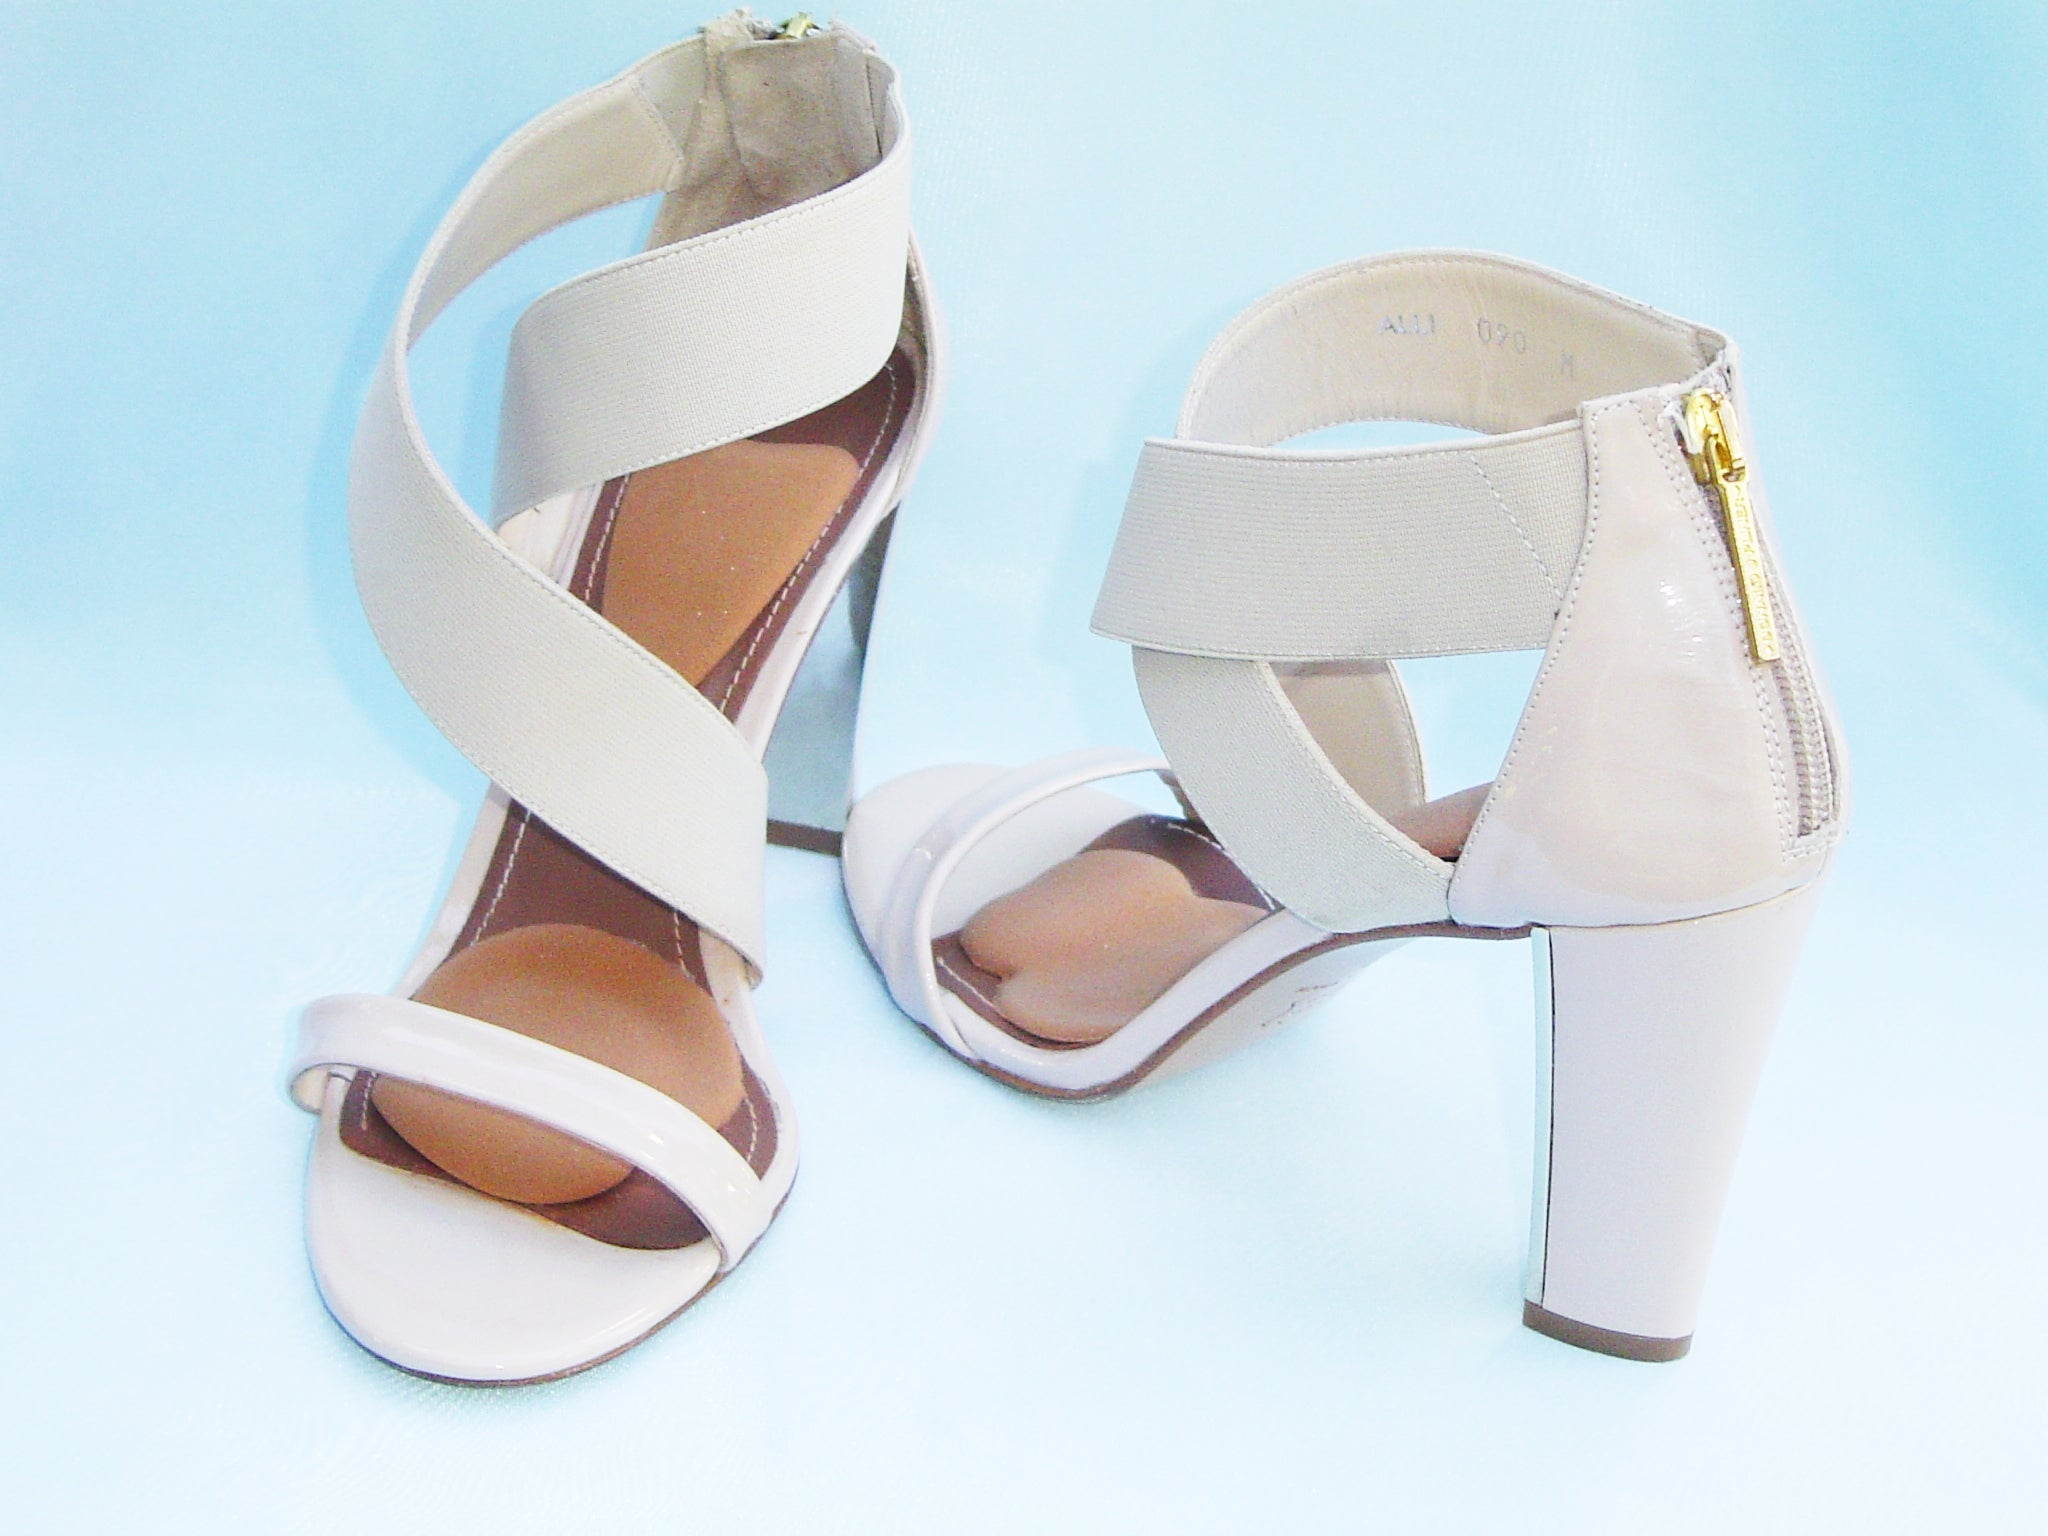 High heel inserts, best inserts for